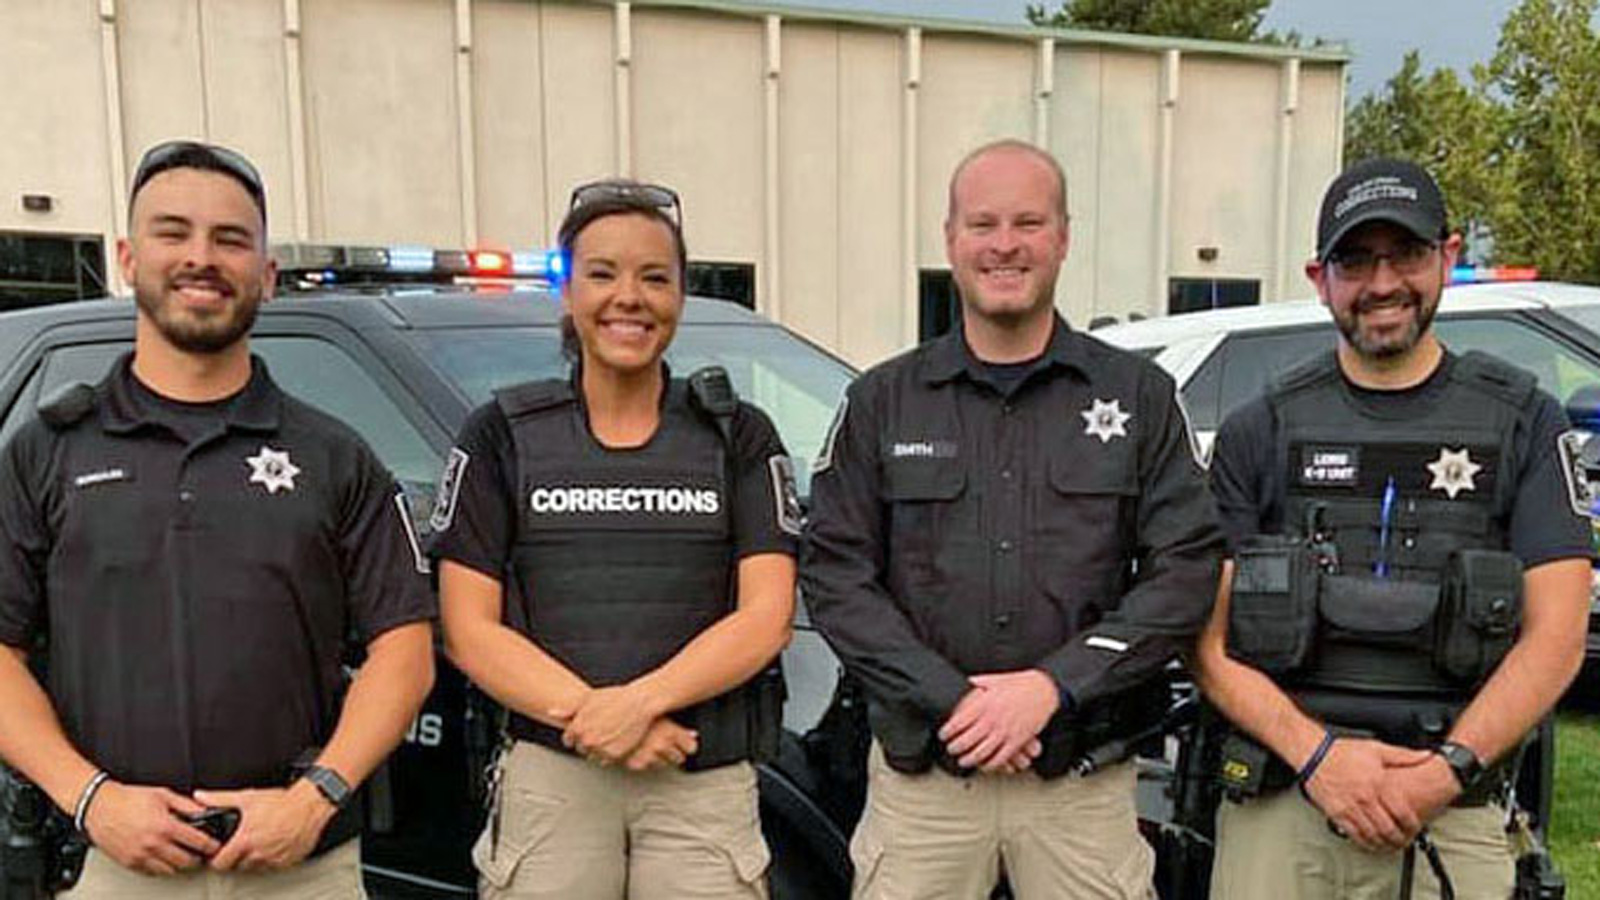 Public safety testing Oct. 16 for law enforcement, corrections candidates